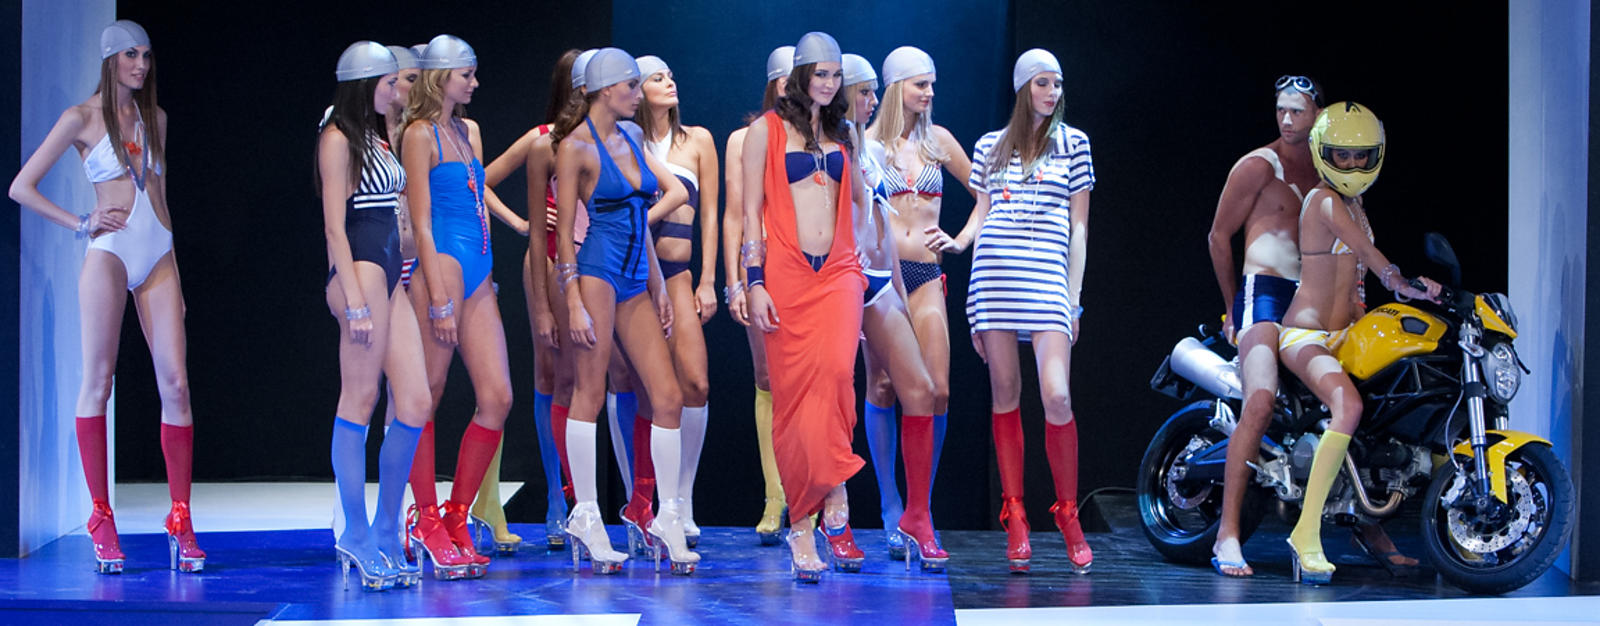 Paris: International Trade for lingerie and beachwear